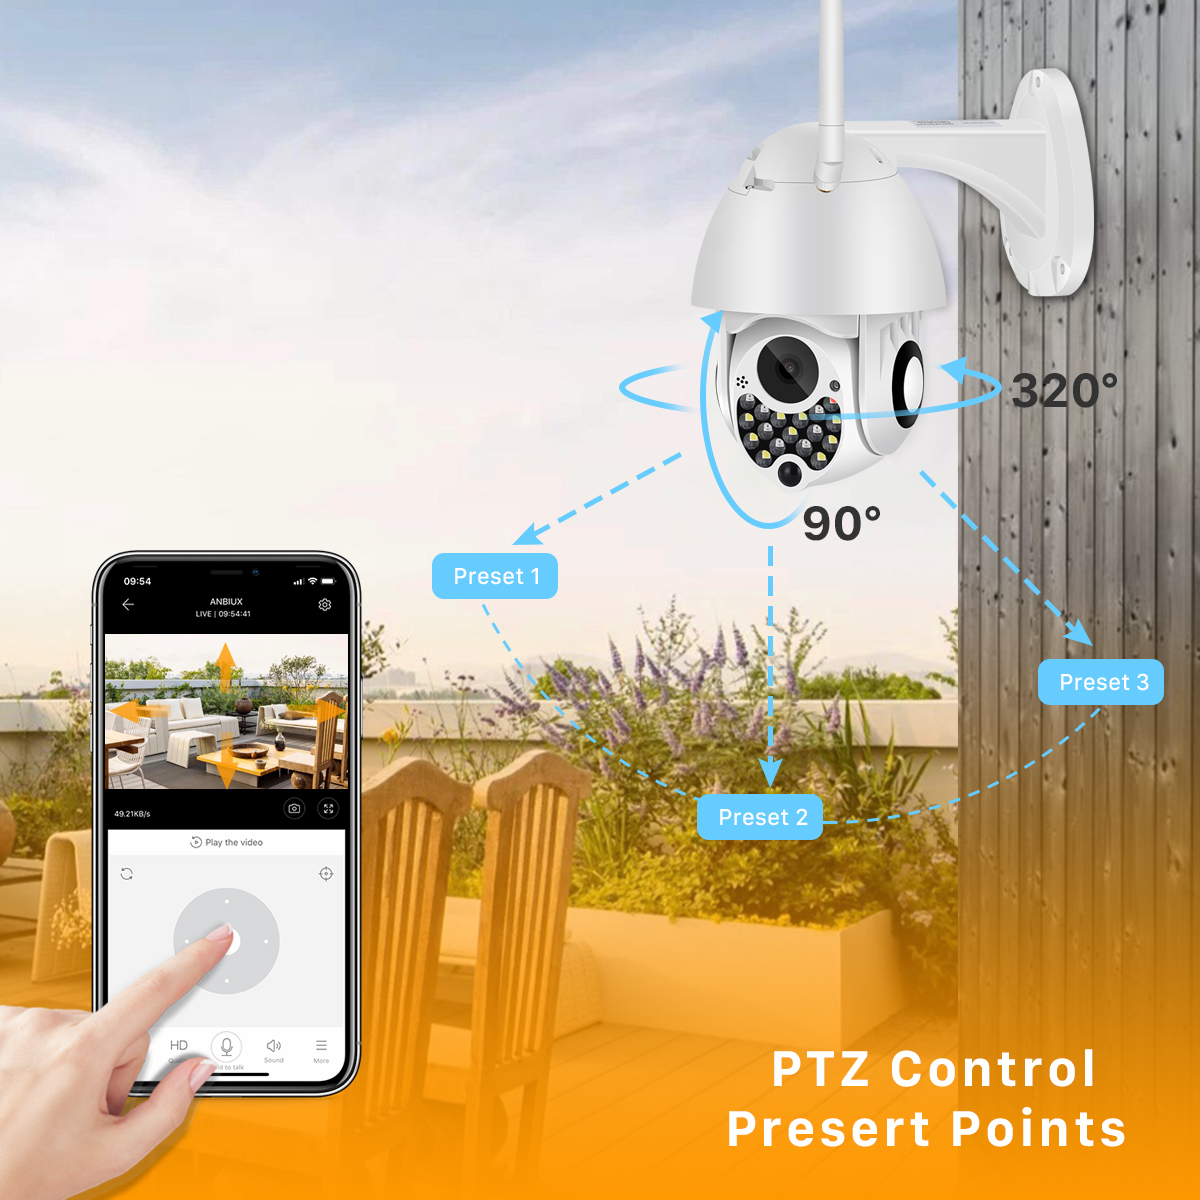 H91ed480c638b47faa31f4a4eeeb7a6ccH 1080P Outdoor Wifi PTZ Camera with Siren Light Auto Tracking Cloud Home Security IP Camera 2MP 4X Digital Zoom Speed Dome Camera